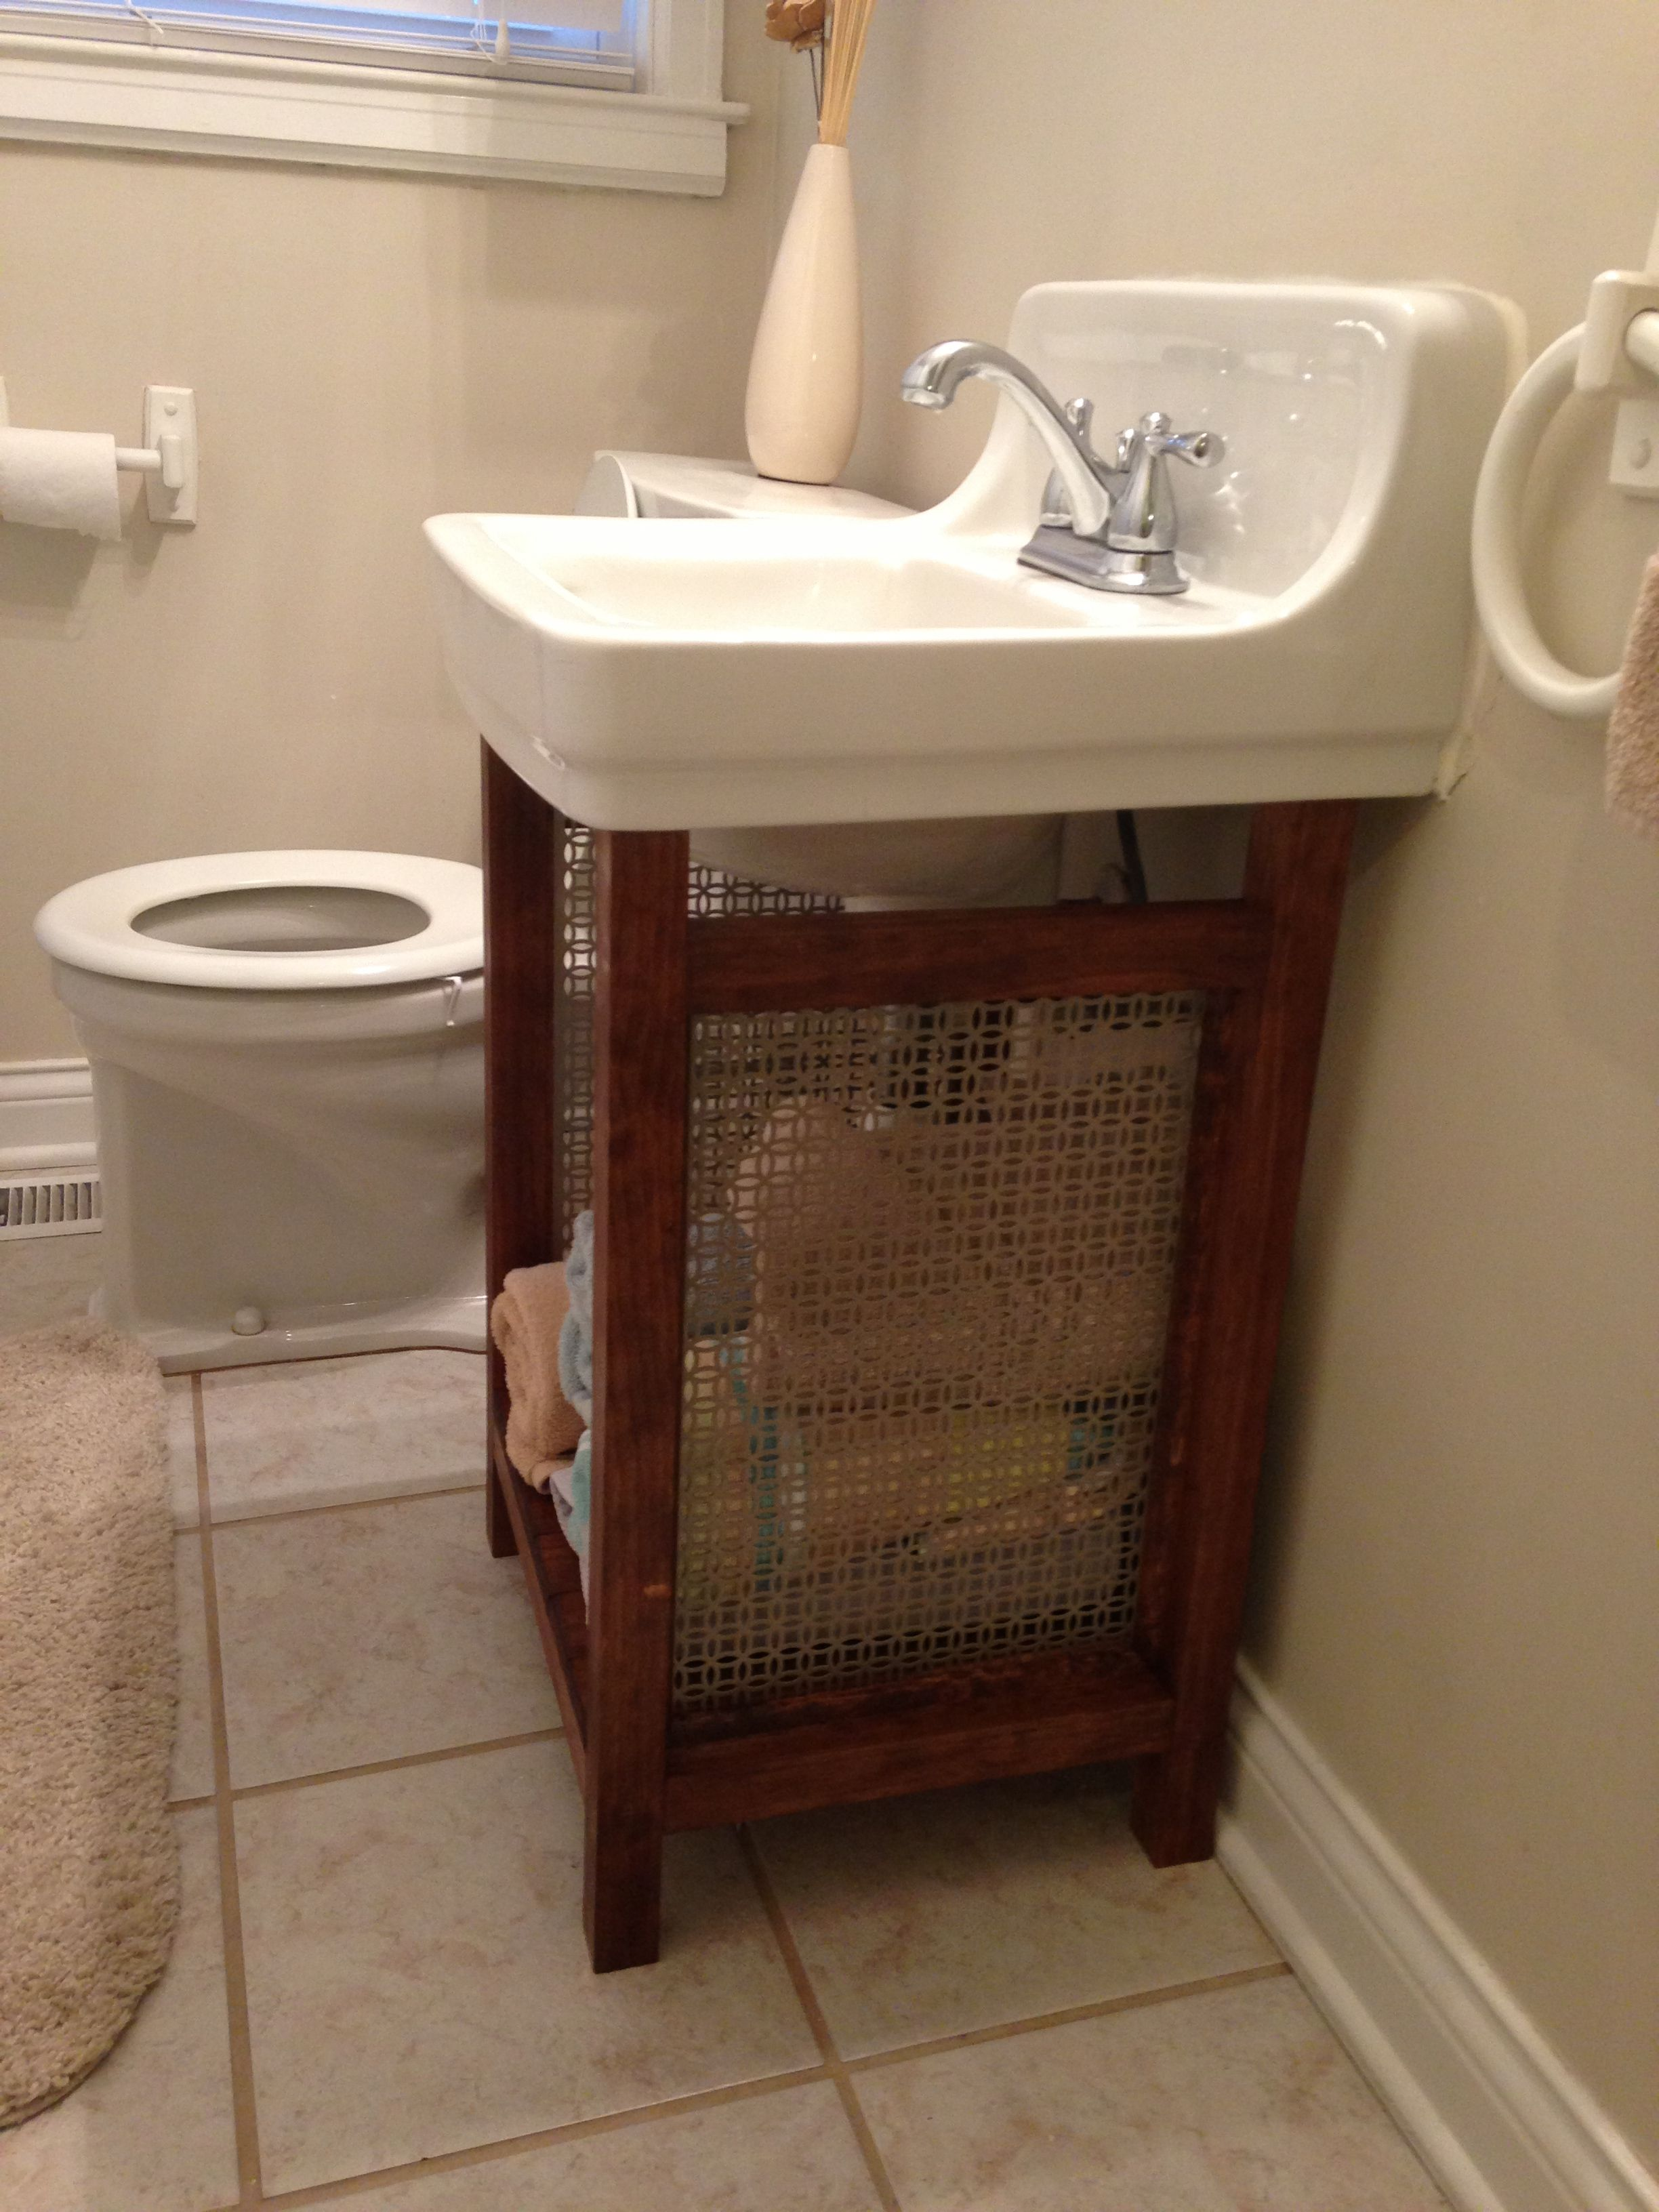 Solution For Old Wall Mounted Sink That Is Super Hard To Replace Pine Boards And Vent Grate